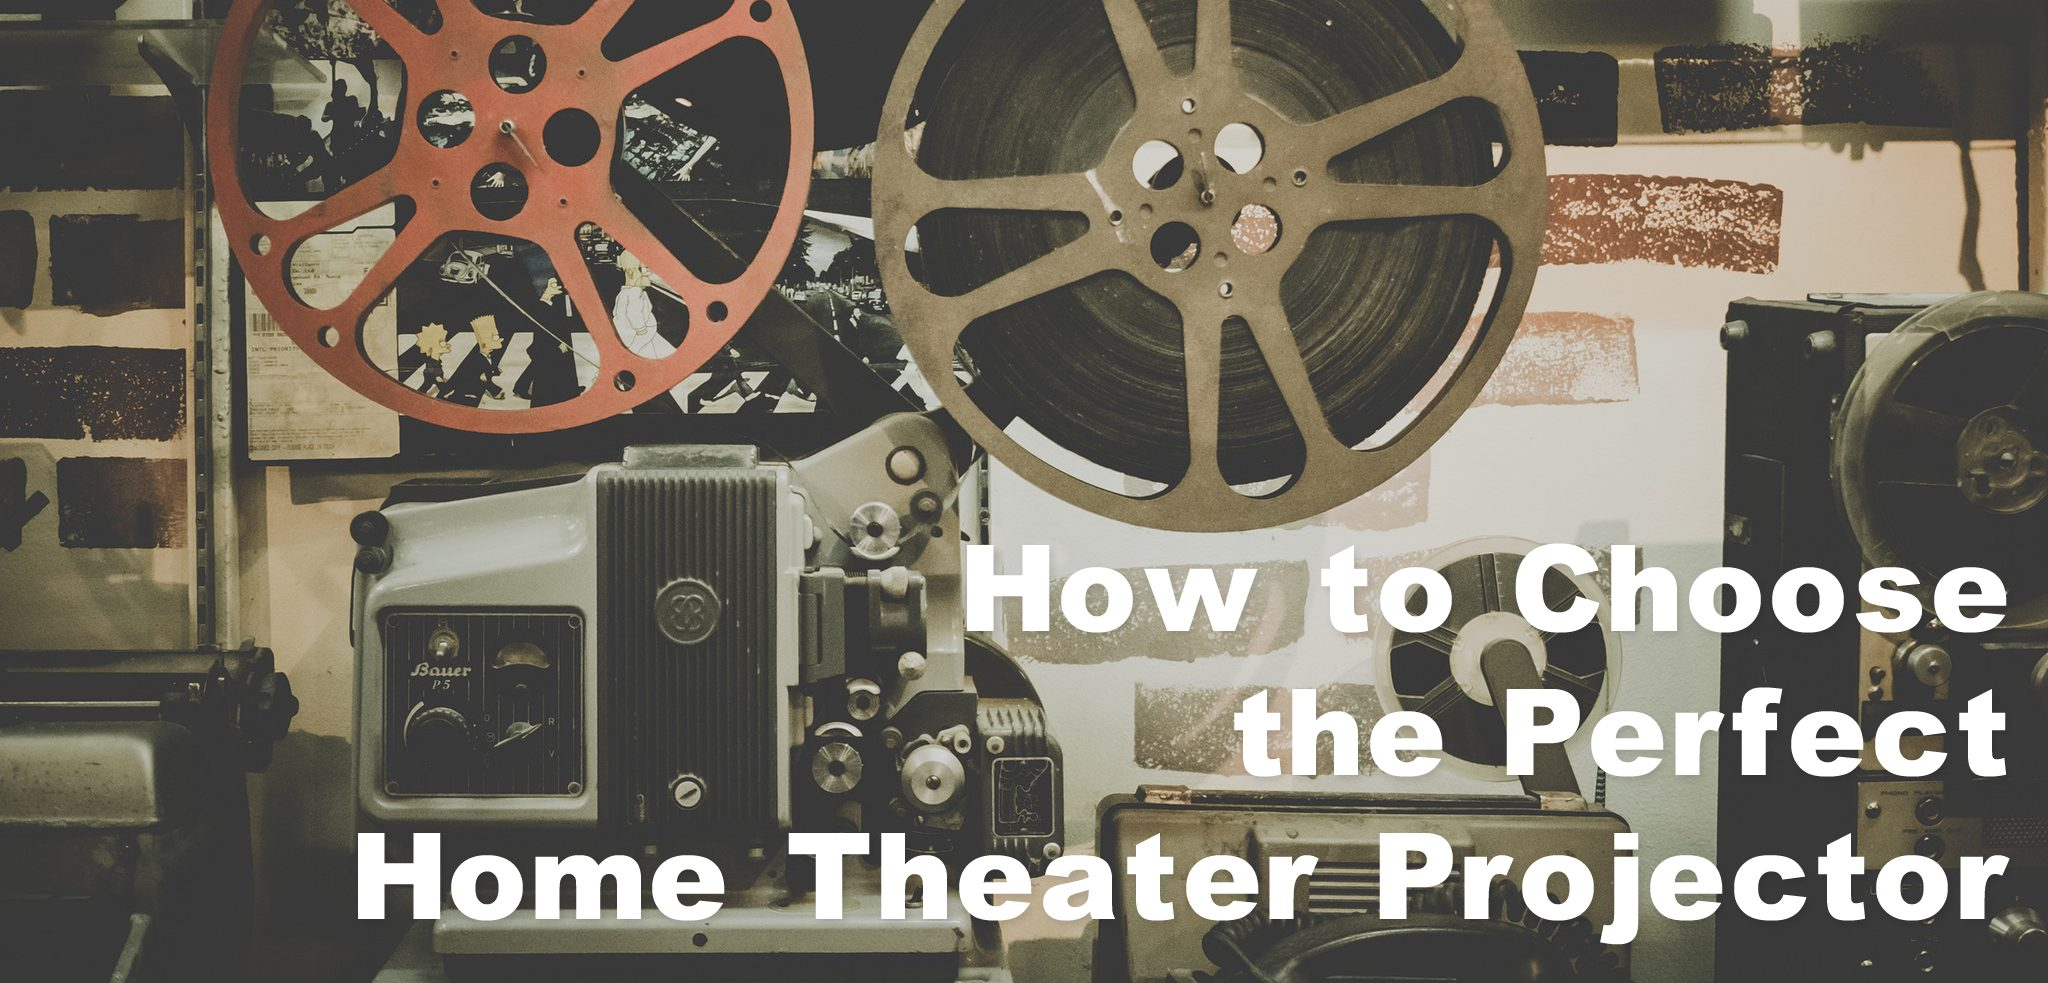 Choosing a projector for your home theater